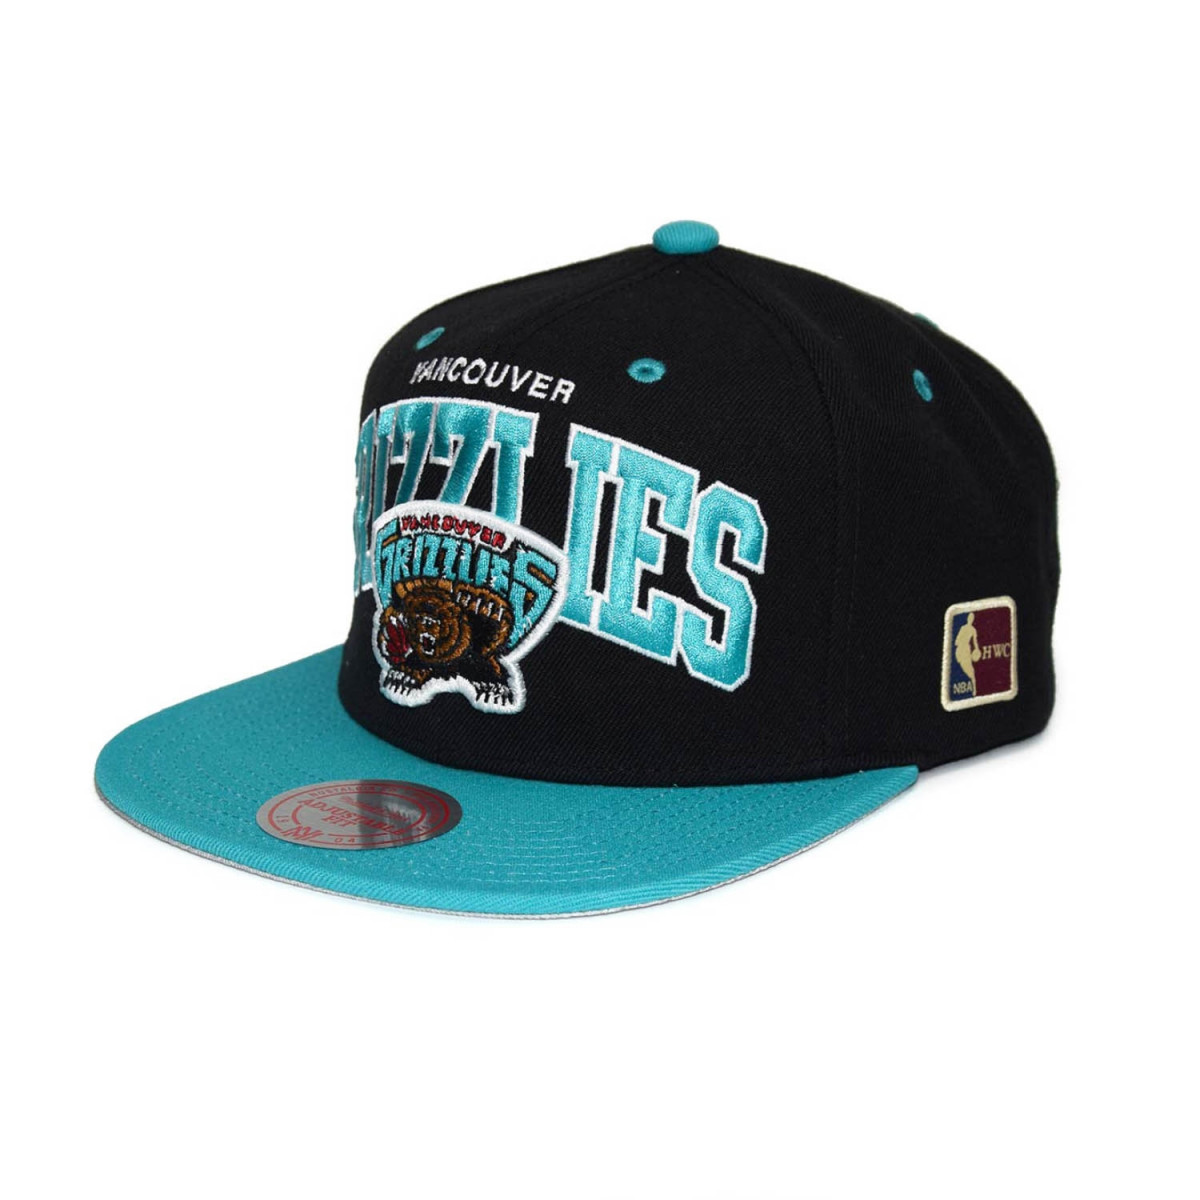 156dc0ef4fa Mitchell   Ness Vancouver Grizzlies Team Arch Snapback NBA Cap  w HWC Patch